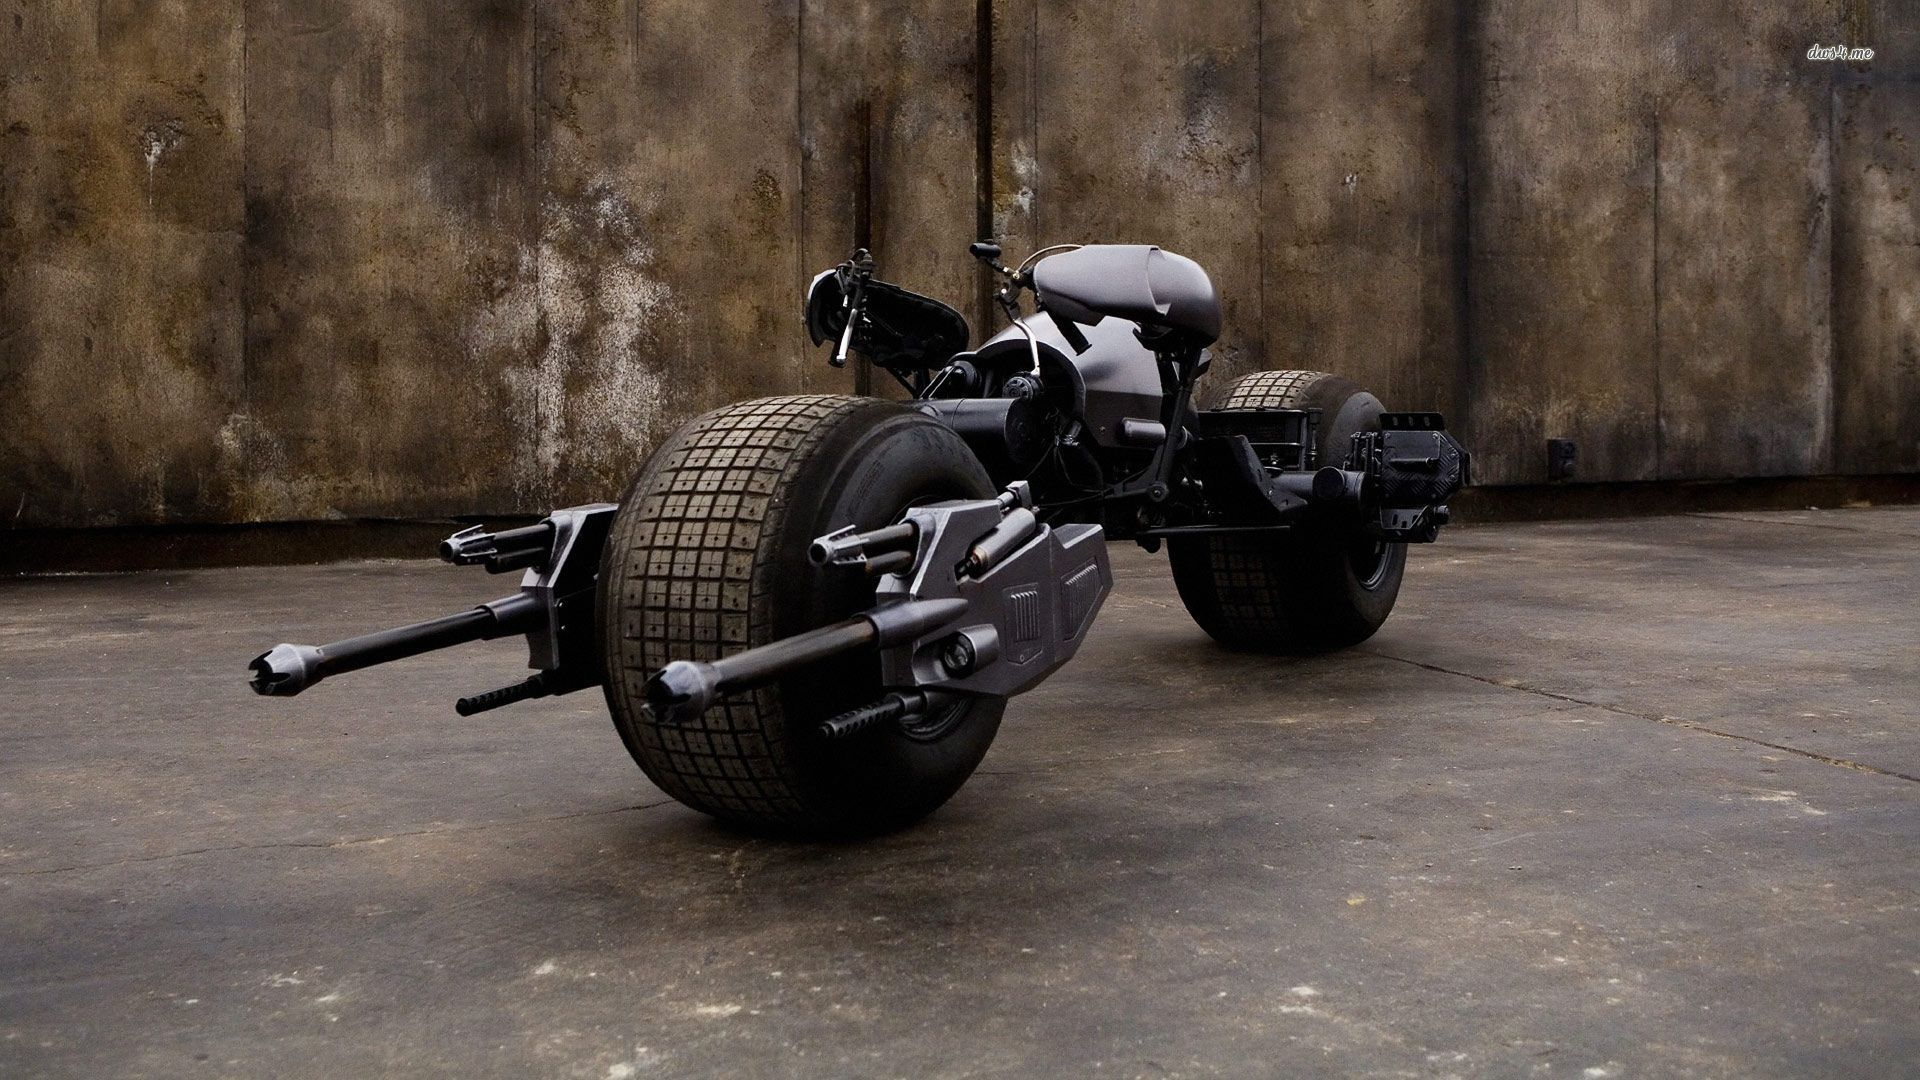 Batpod wallpaper   Motorcycle wallpapers   6314 1920x1080